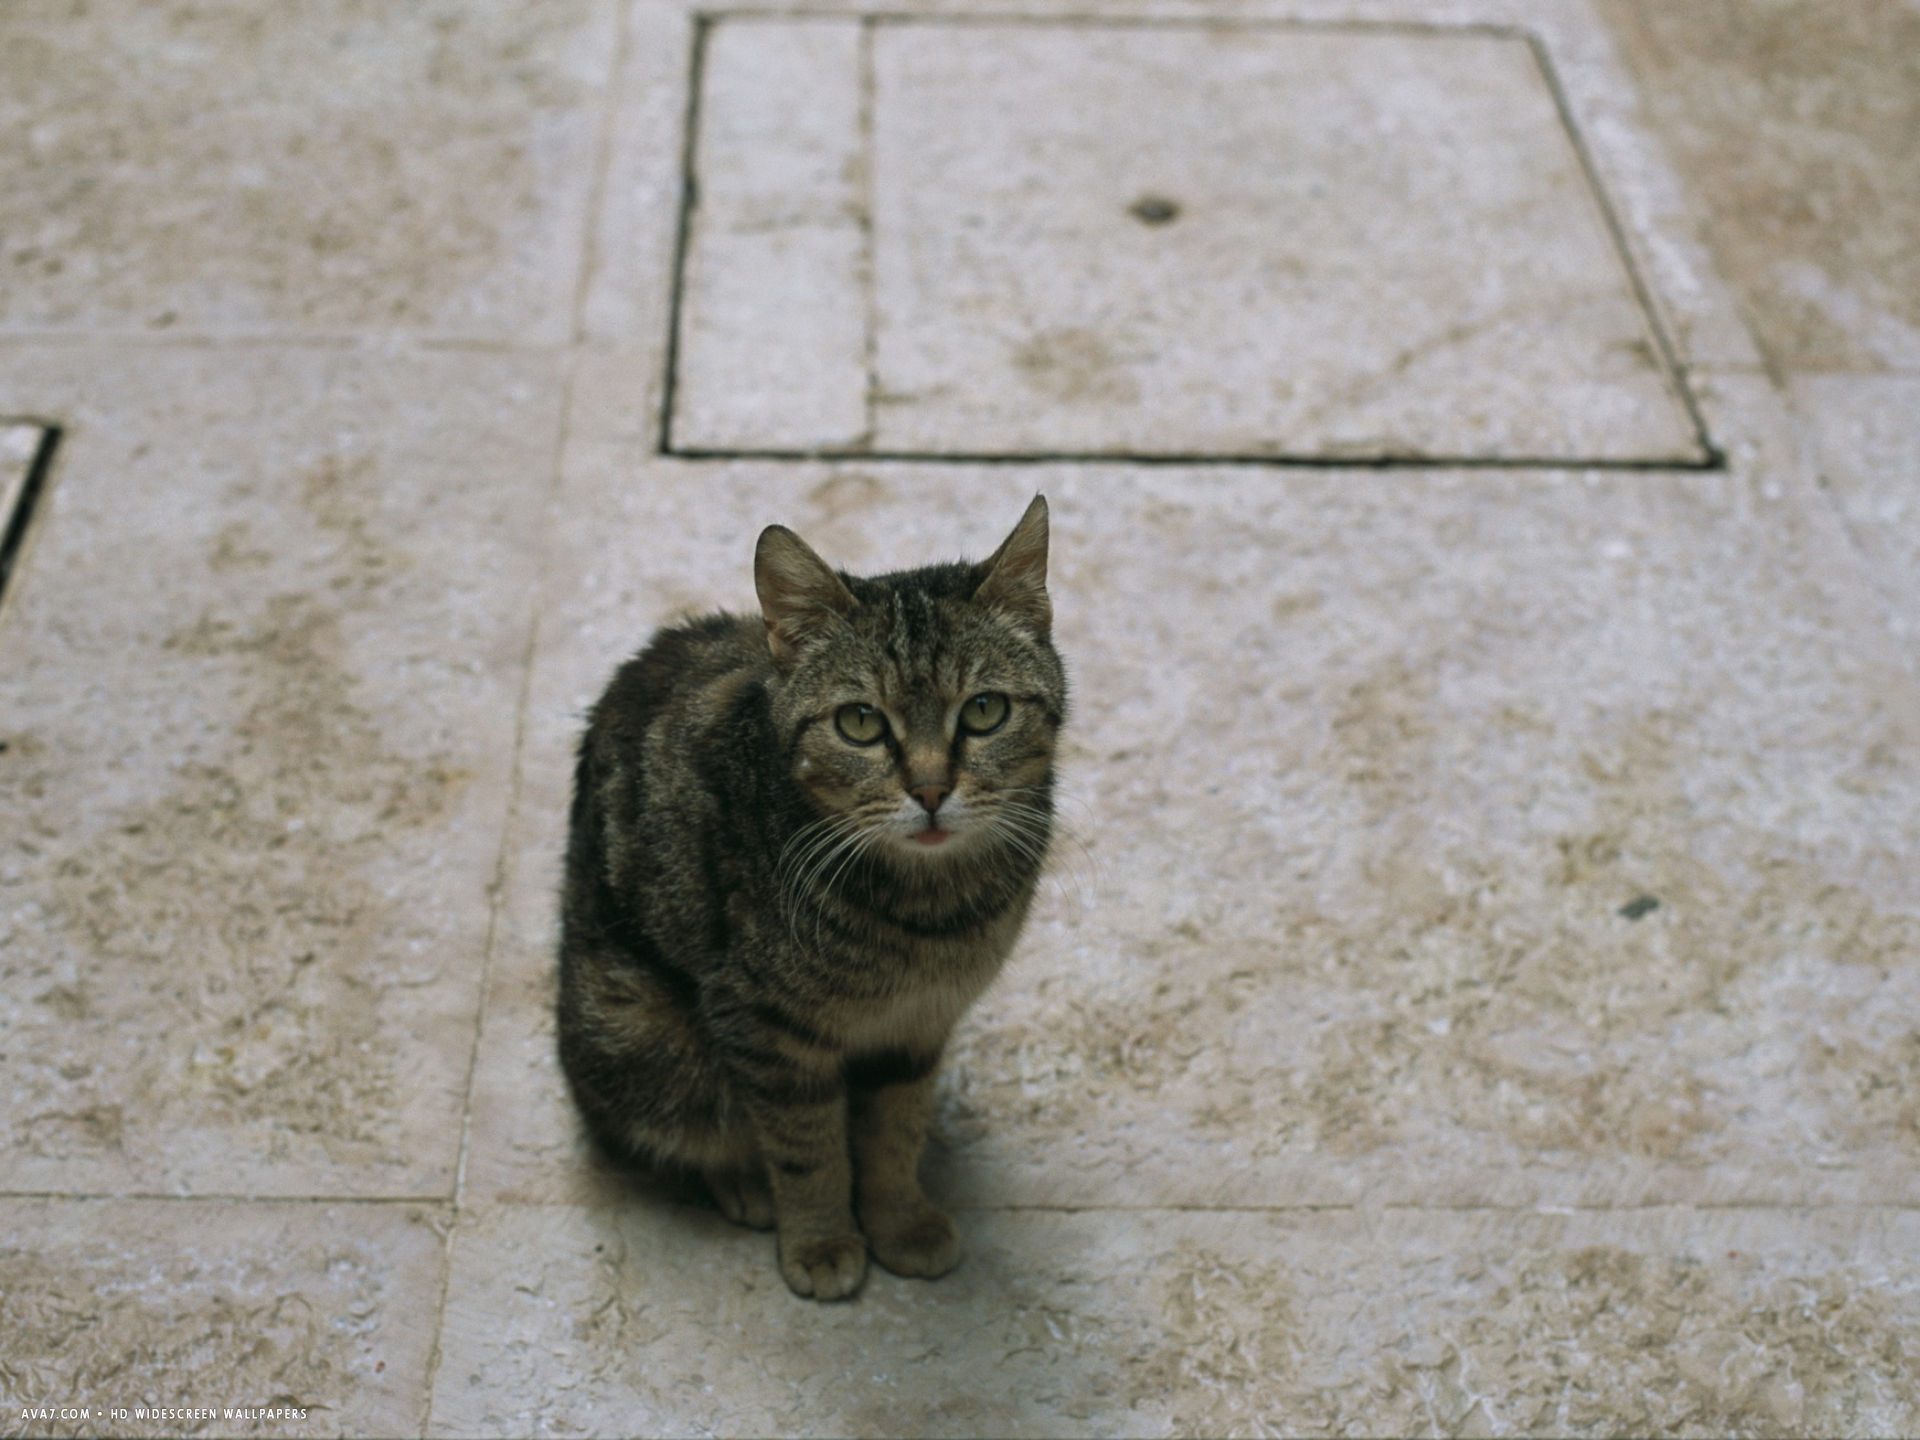 brown tabby cat sitting on tiles looking up at the camera